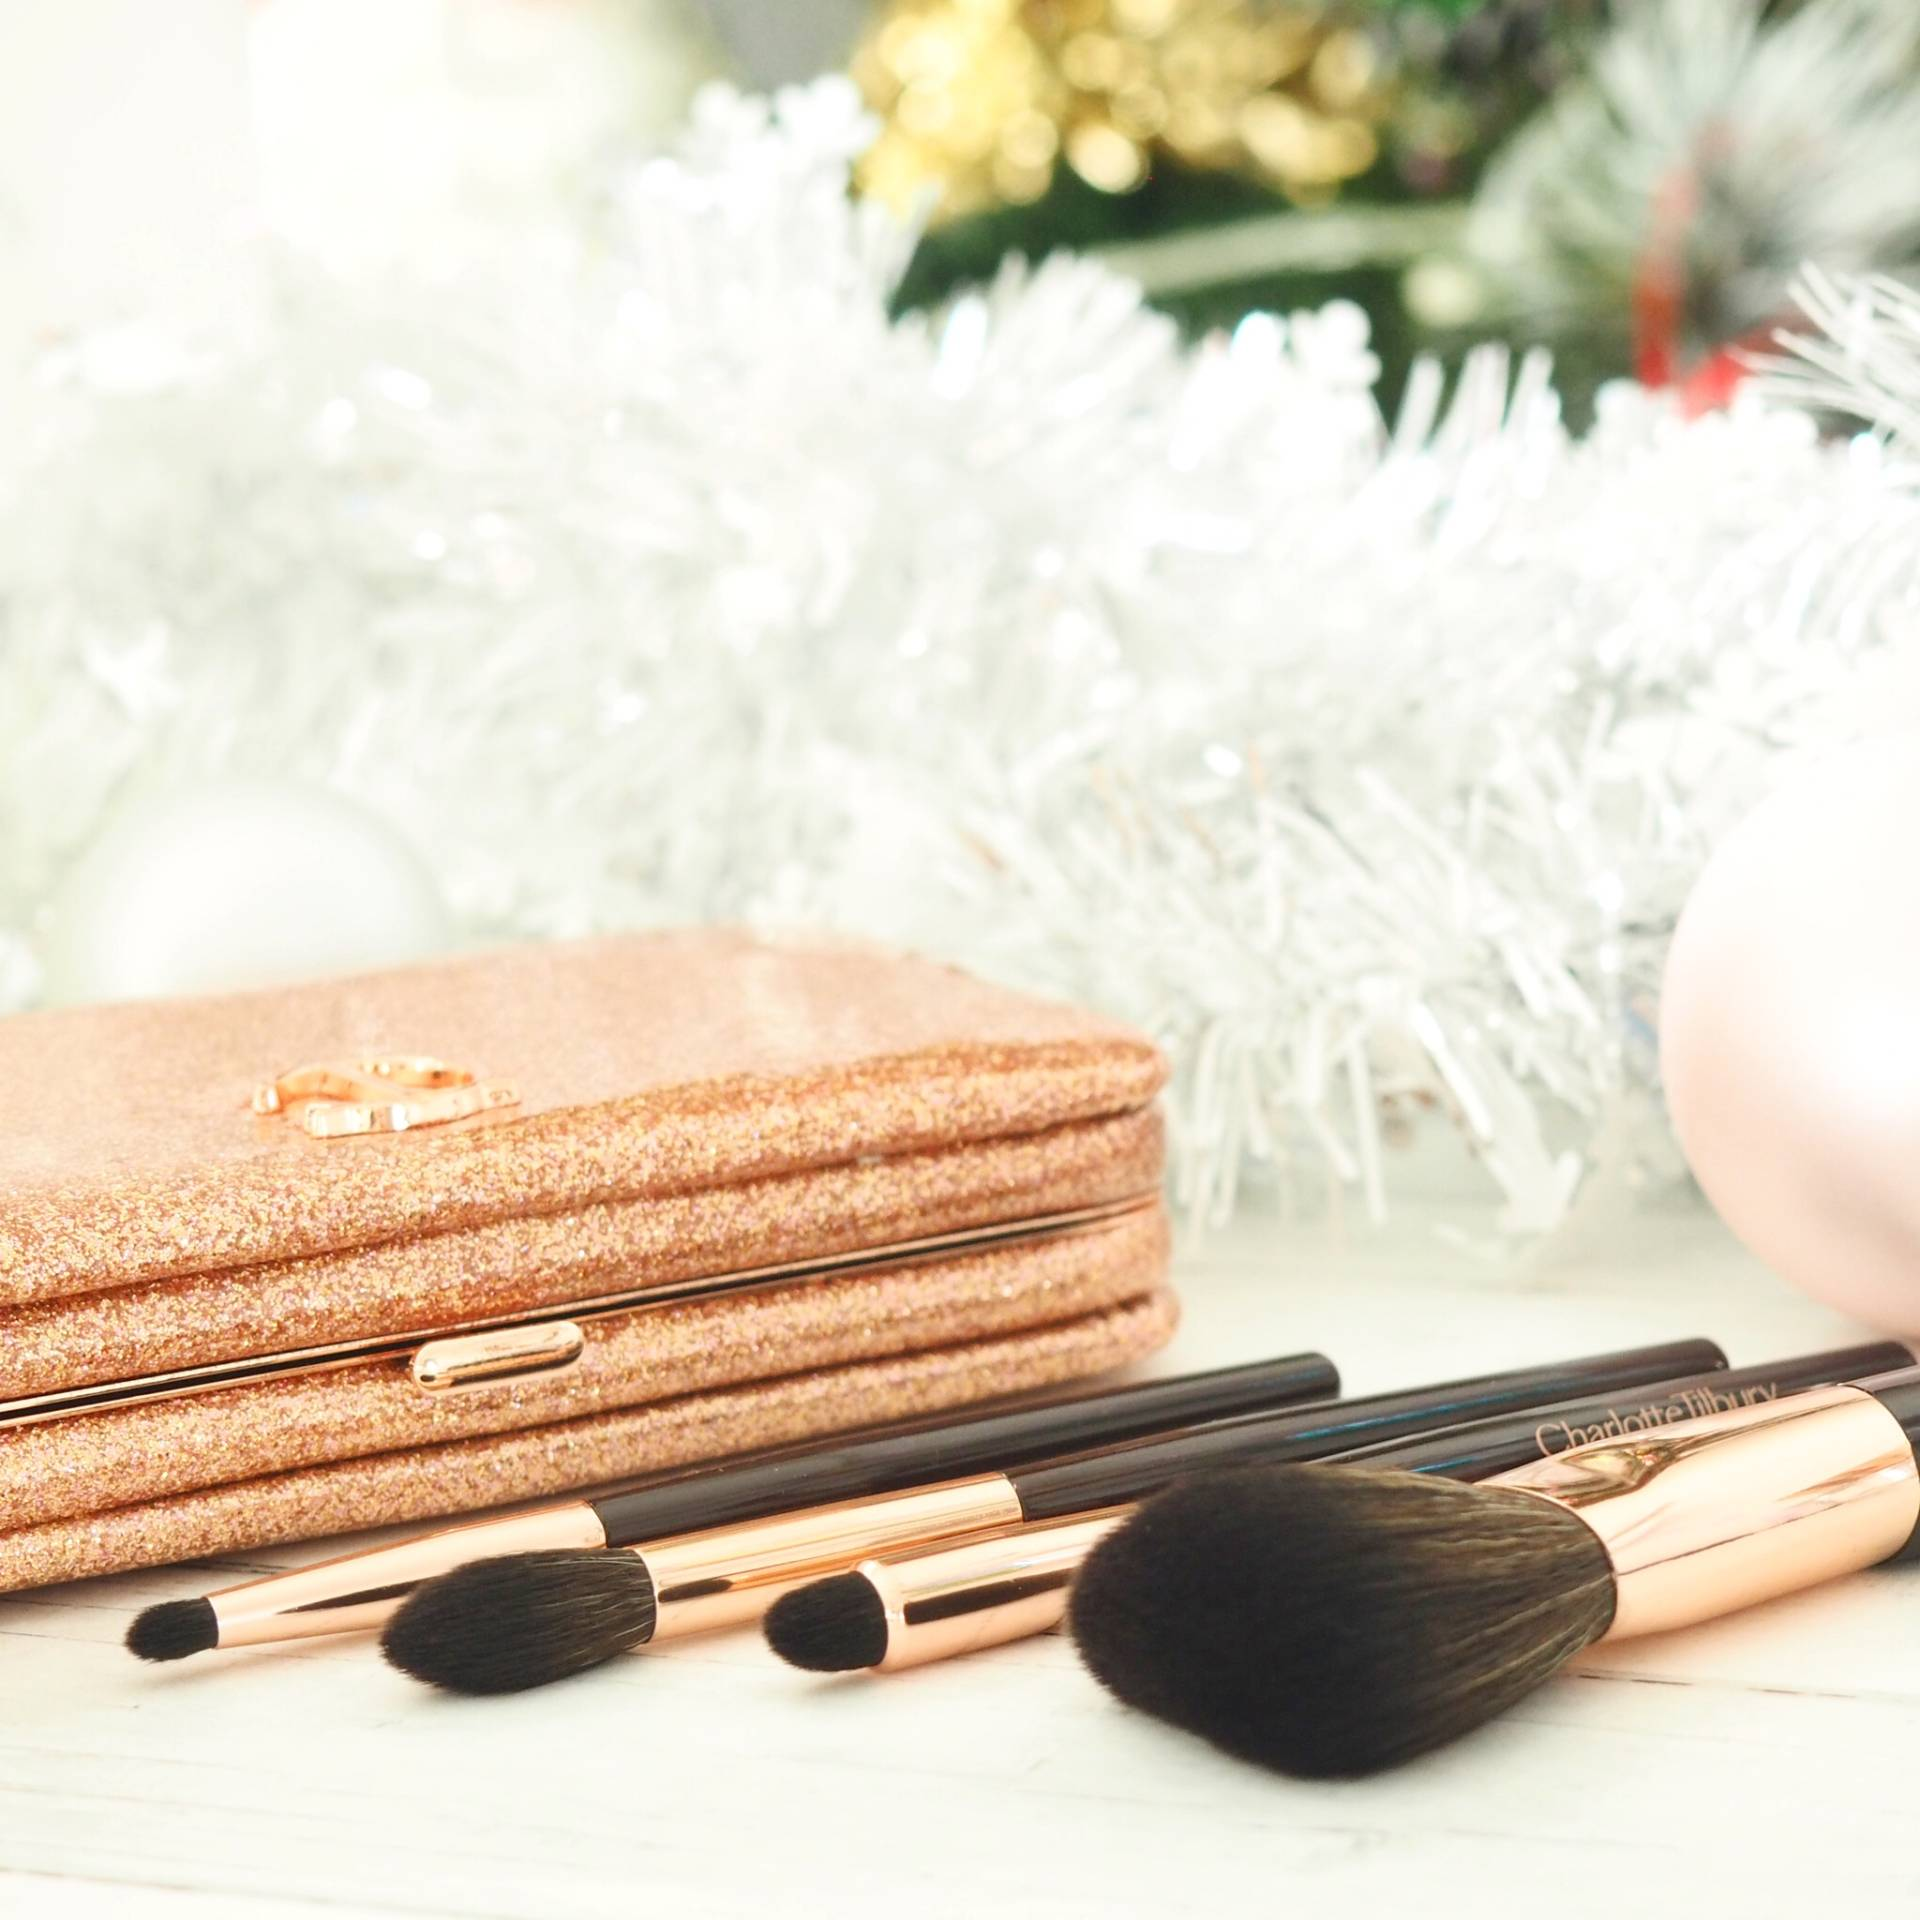 Charlotte_Tilbury_Makeup_Brushes